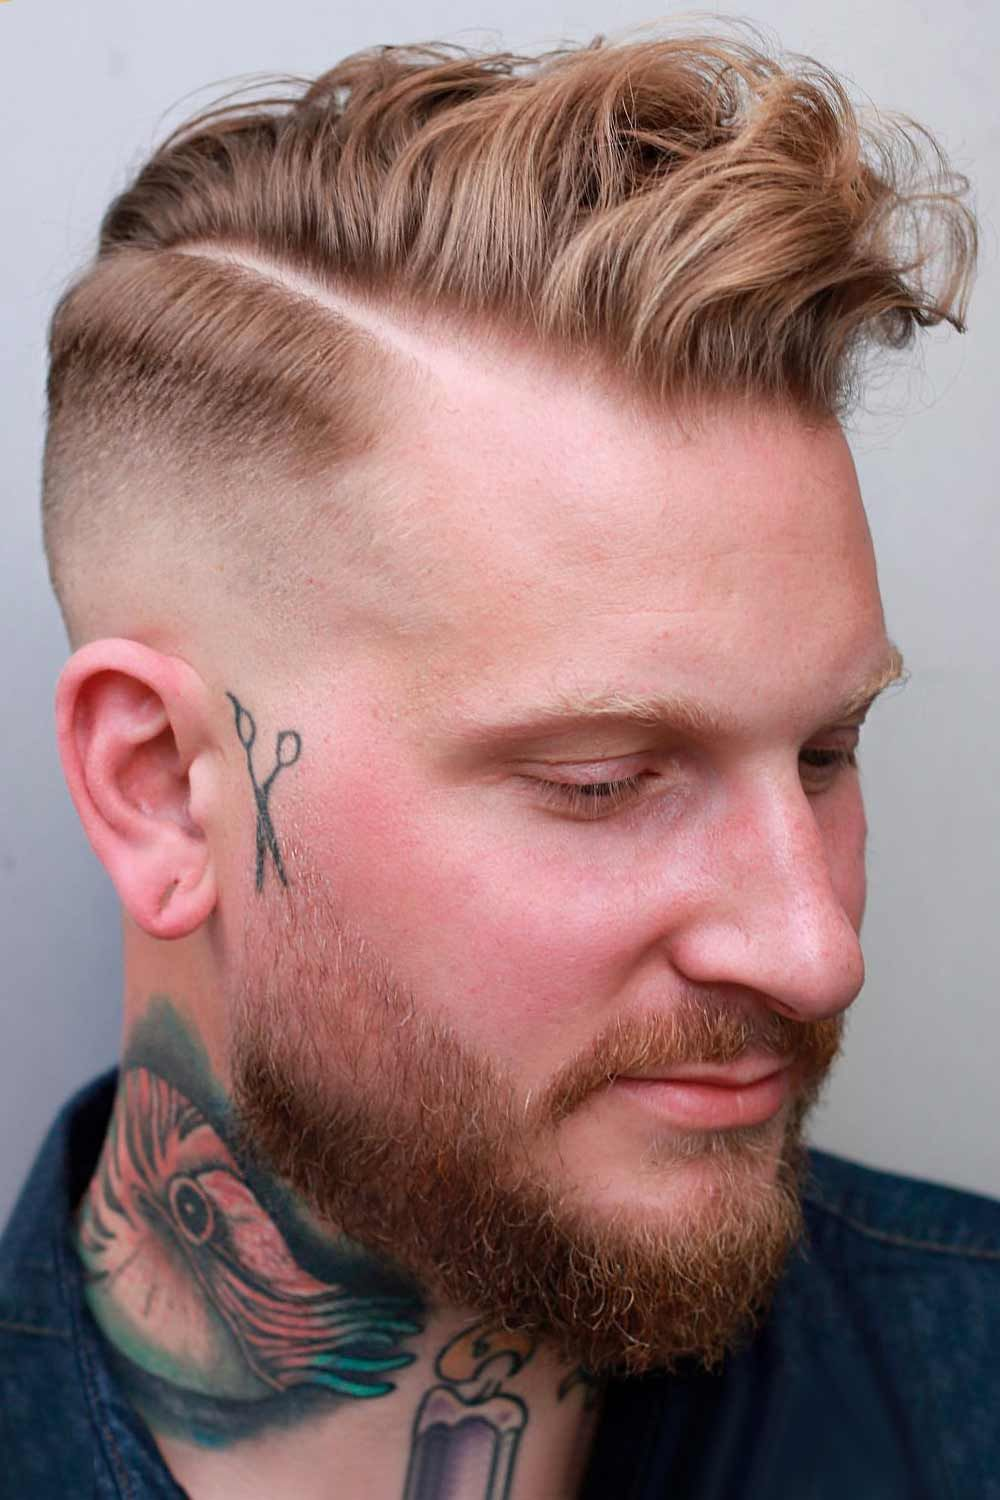 Awesome Disconnected Undercut Hairstyle Ideas You Should Give A Go In 2020 Undercut Hairstyles Long Hair Styles Men Short Hair Styles For Round Faces